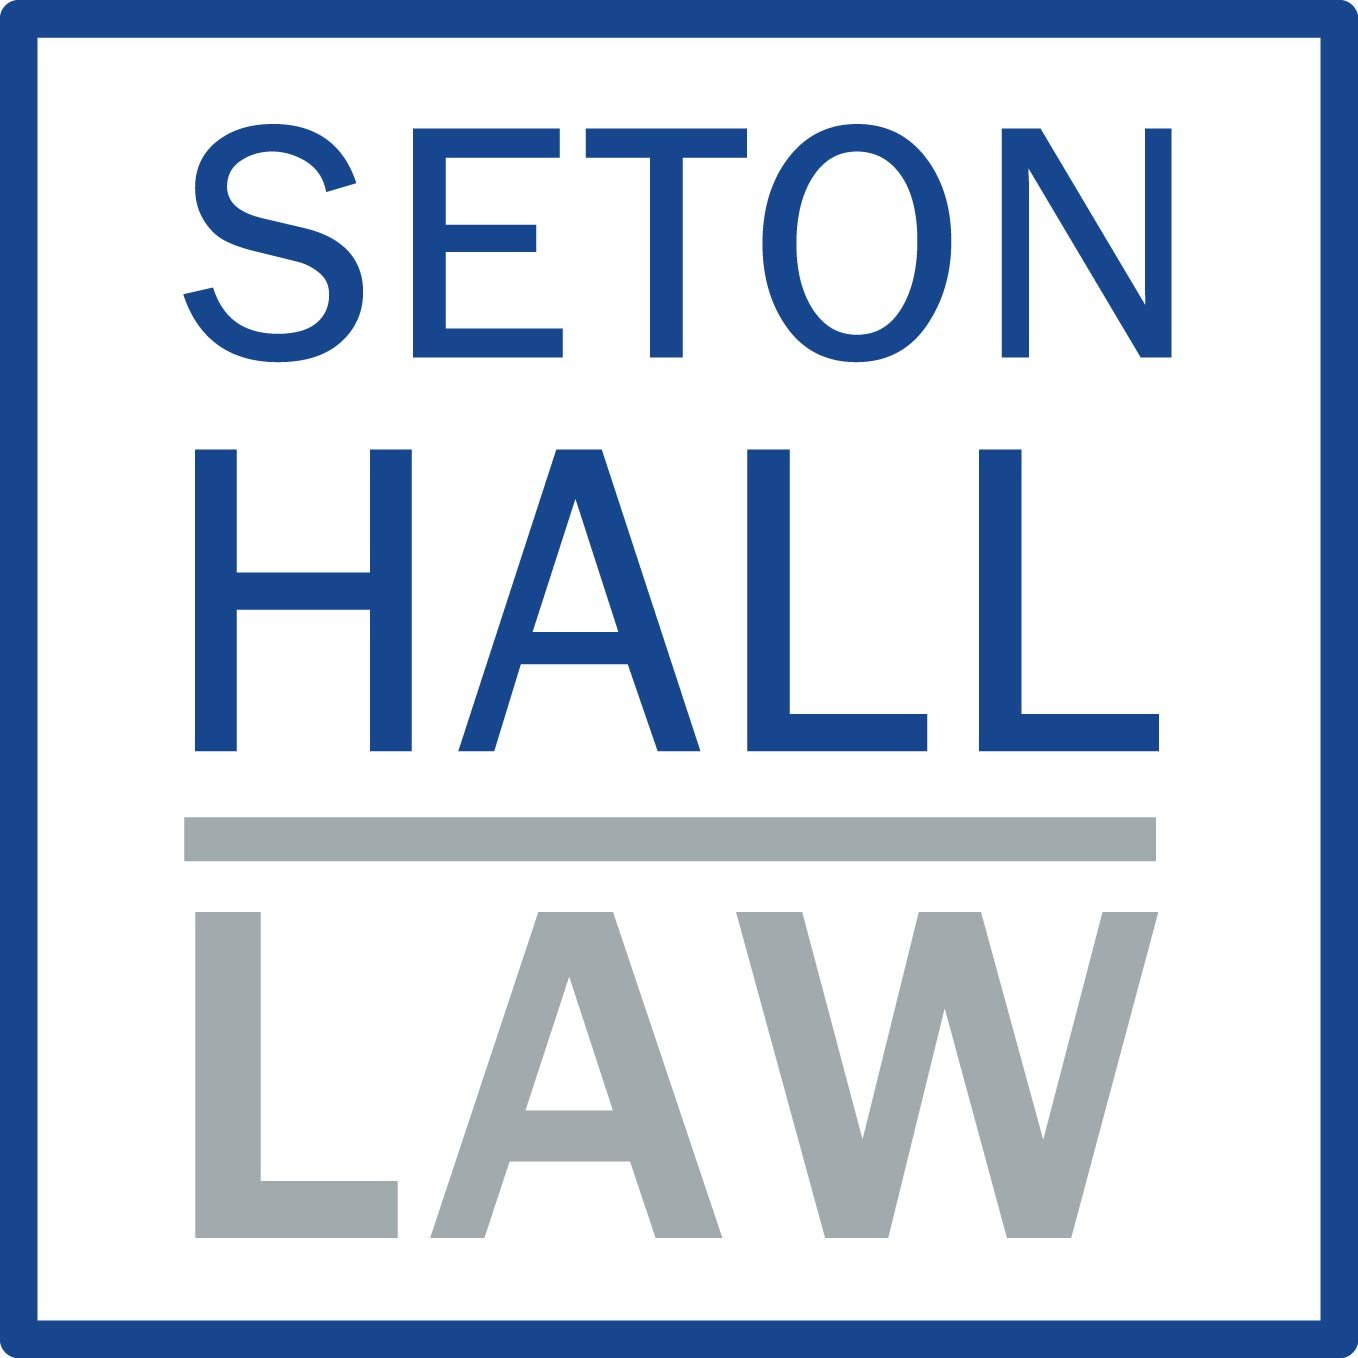 Seton Hall Law (logo box)